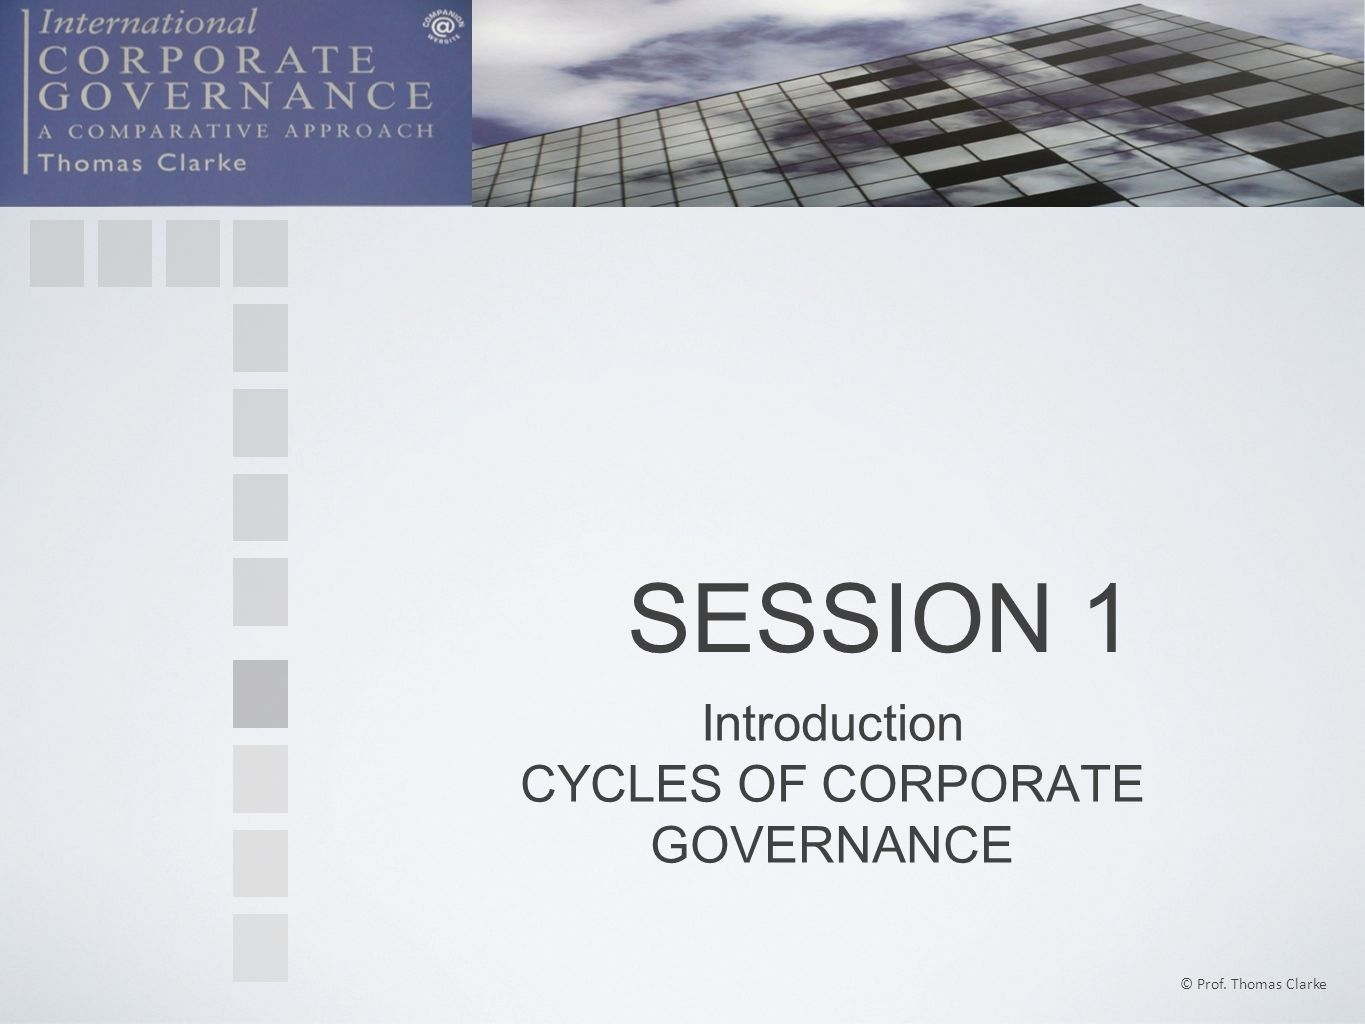 CYCLES OF CORPORATE GOVERNANCE